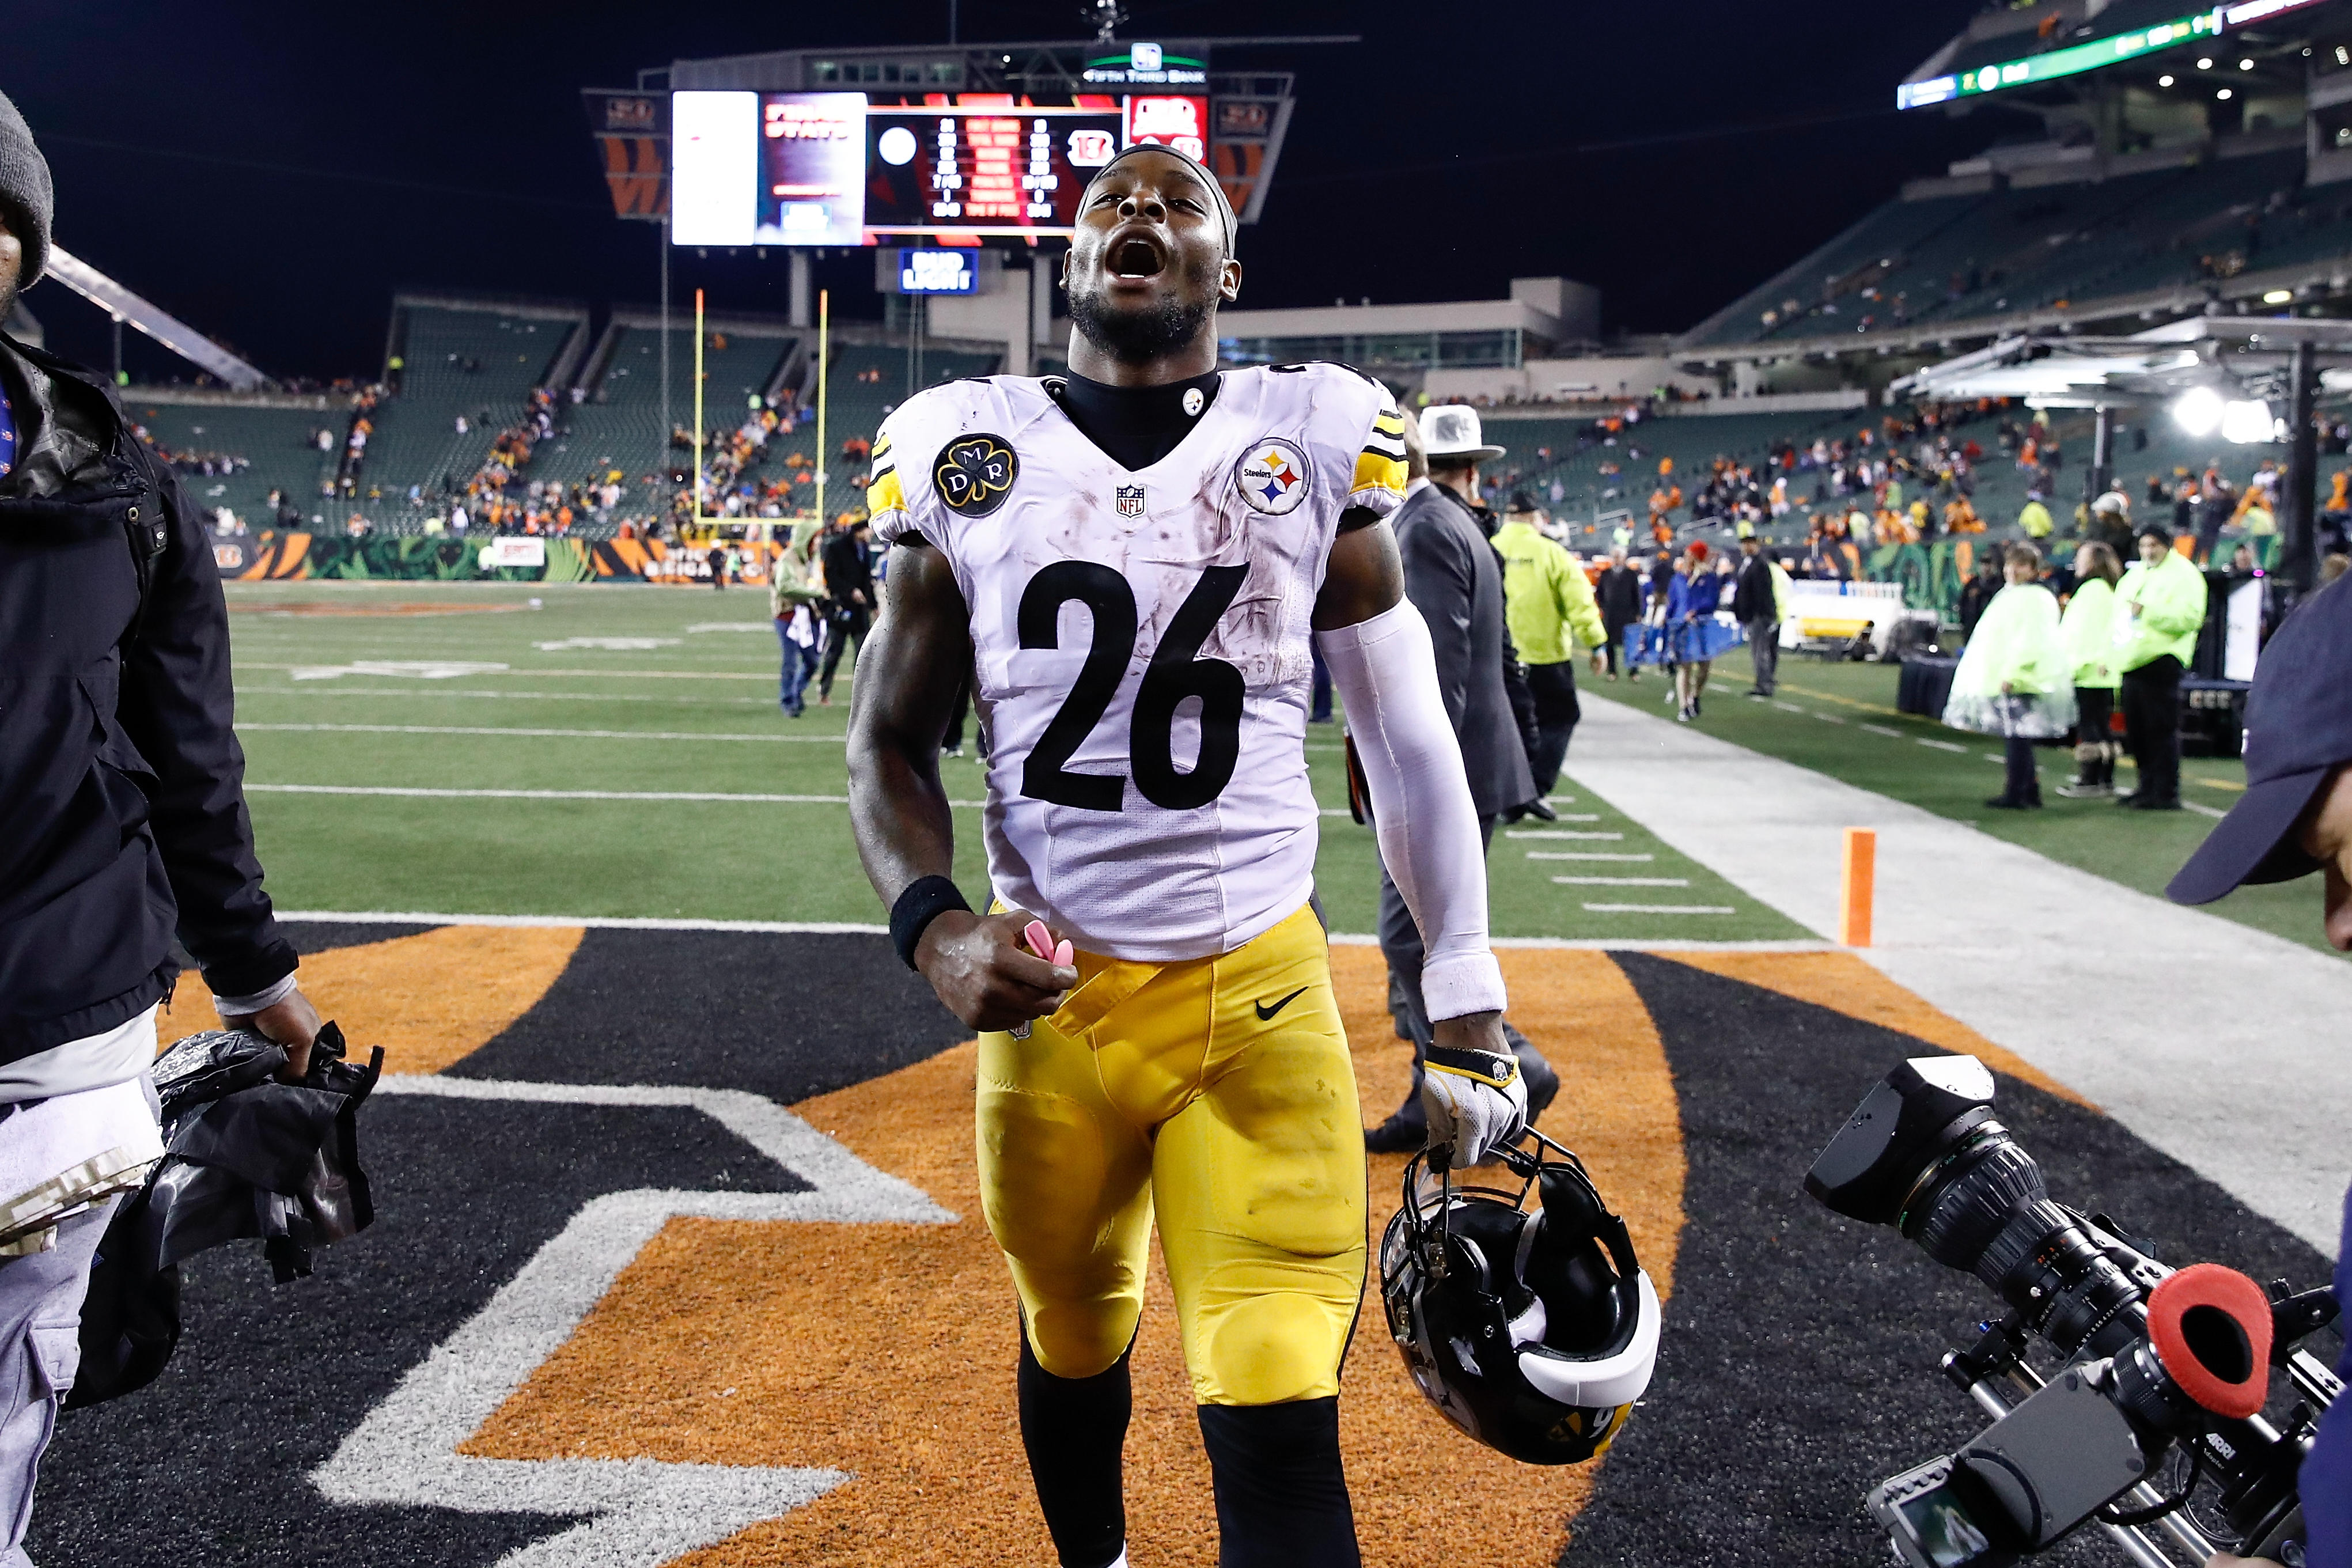 separation shoes ae277 6145f Le'Veon Bell, Pittsburgh Steelers running back, misses NFL ...